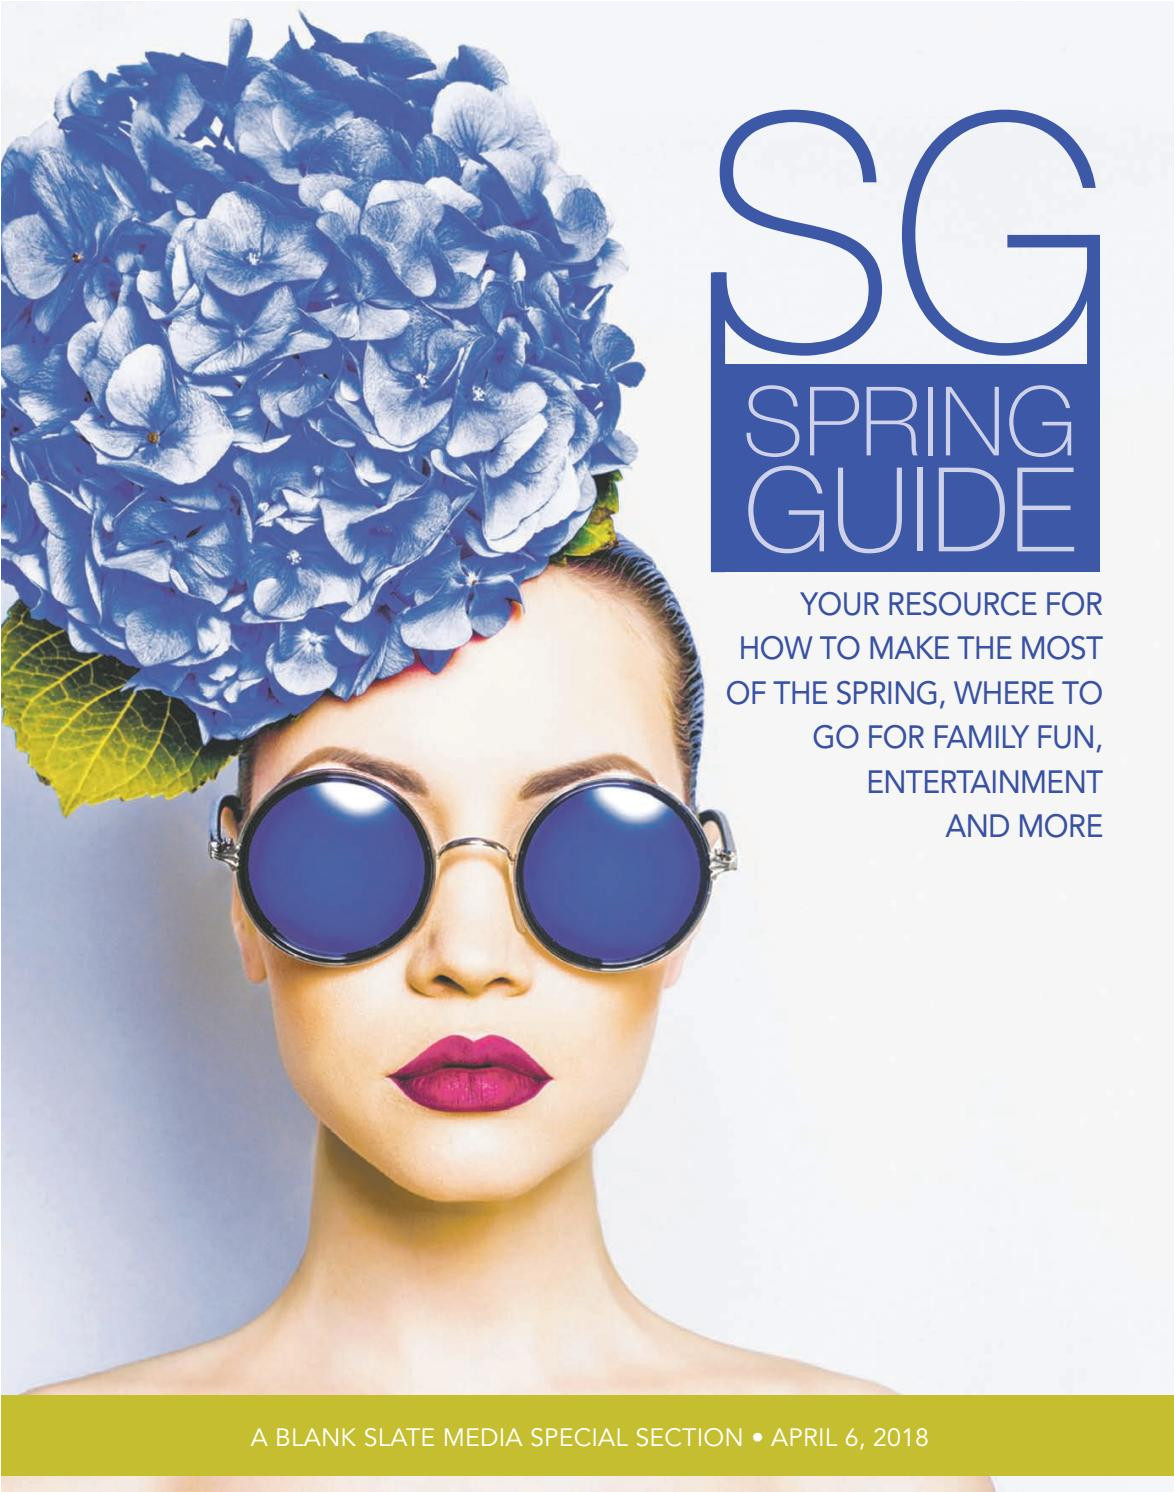 City Shades Be Spontaneous Guide to Spring 2018 04 06 by the island now issuu